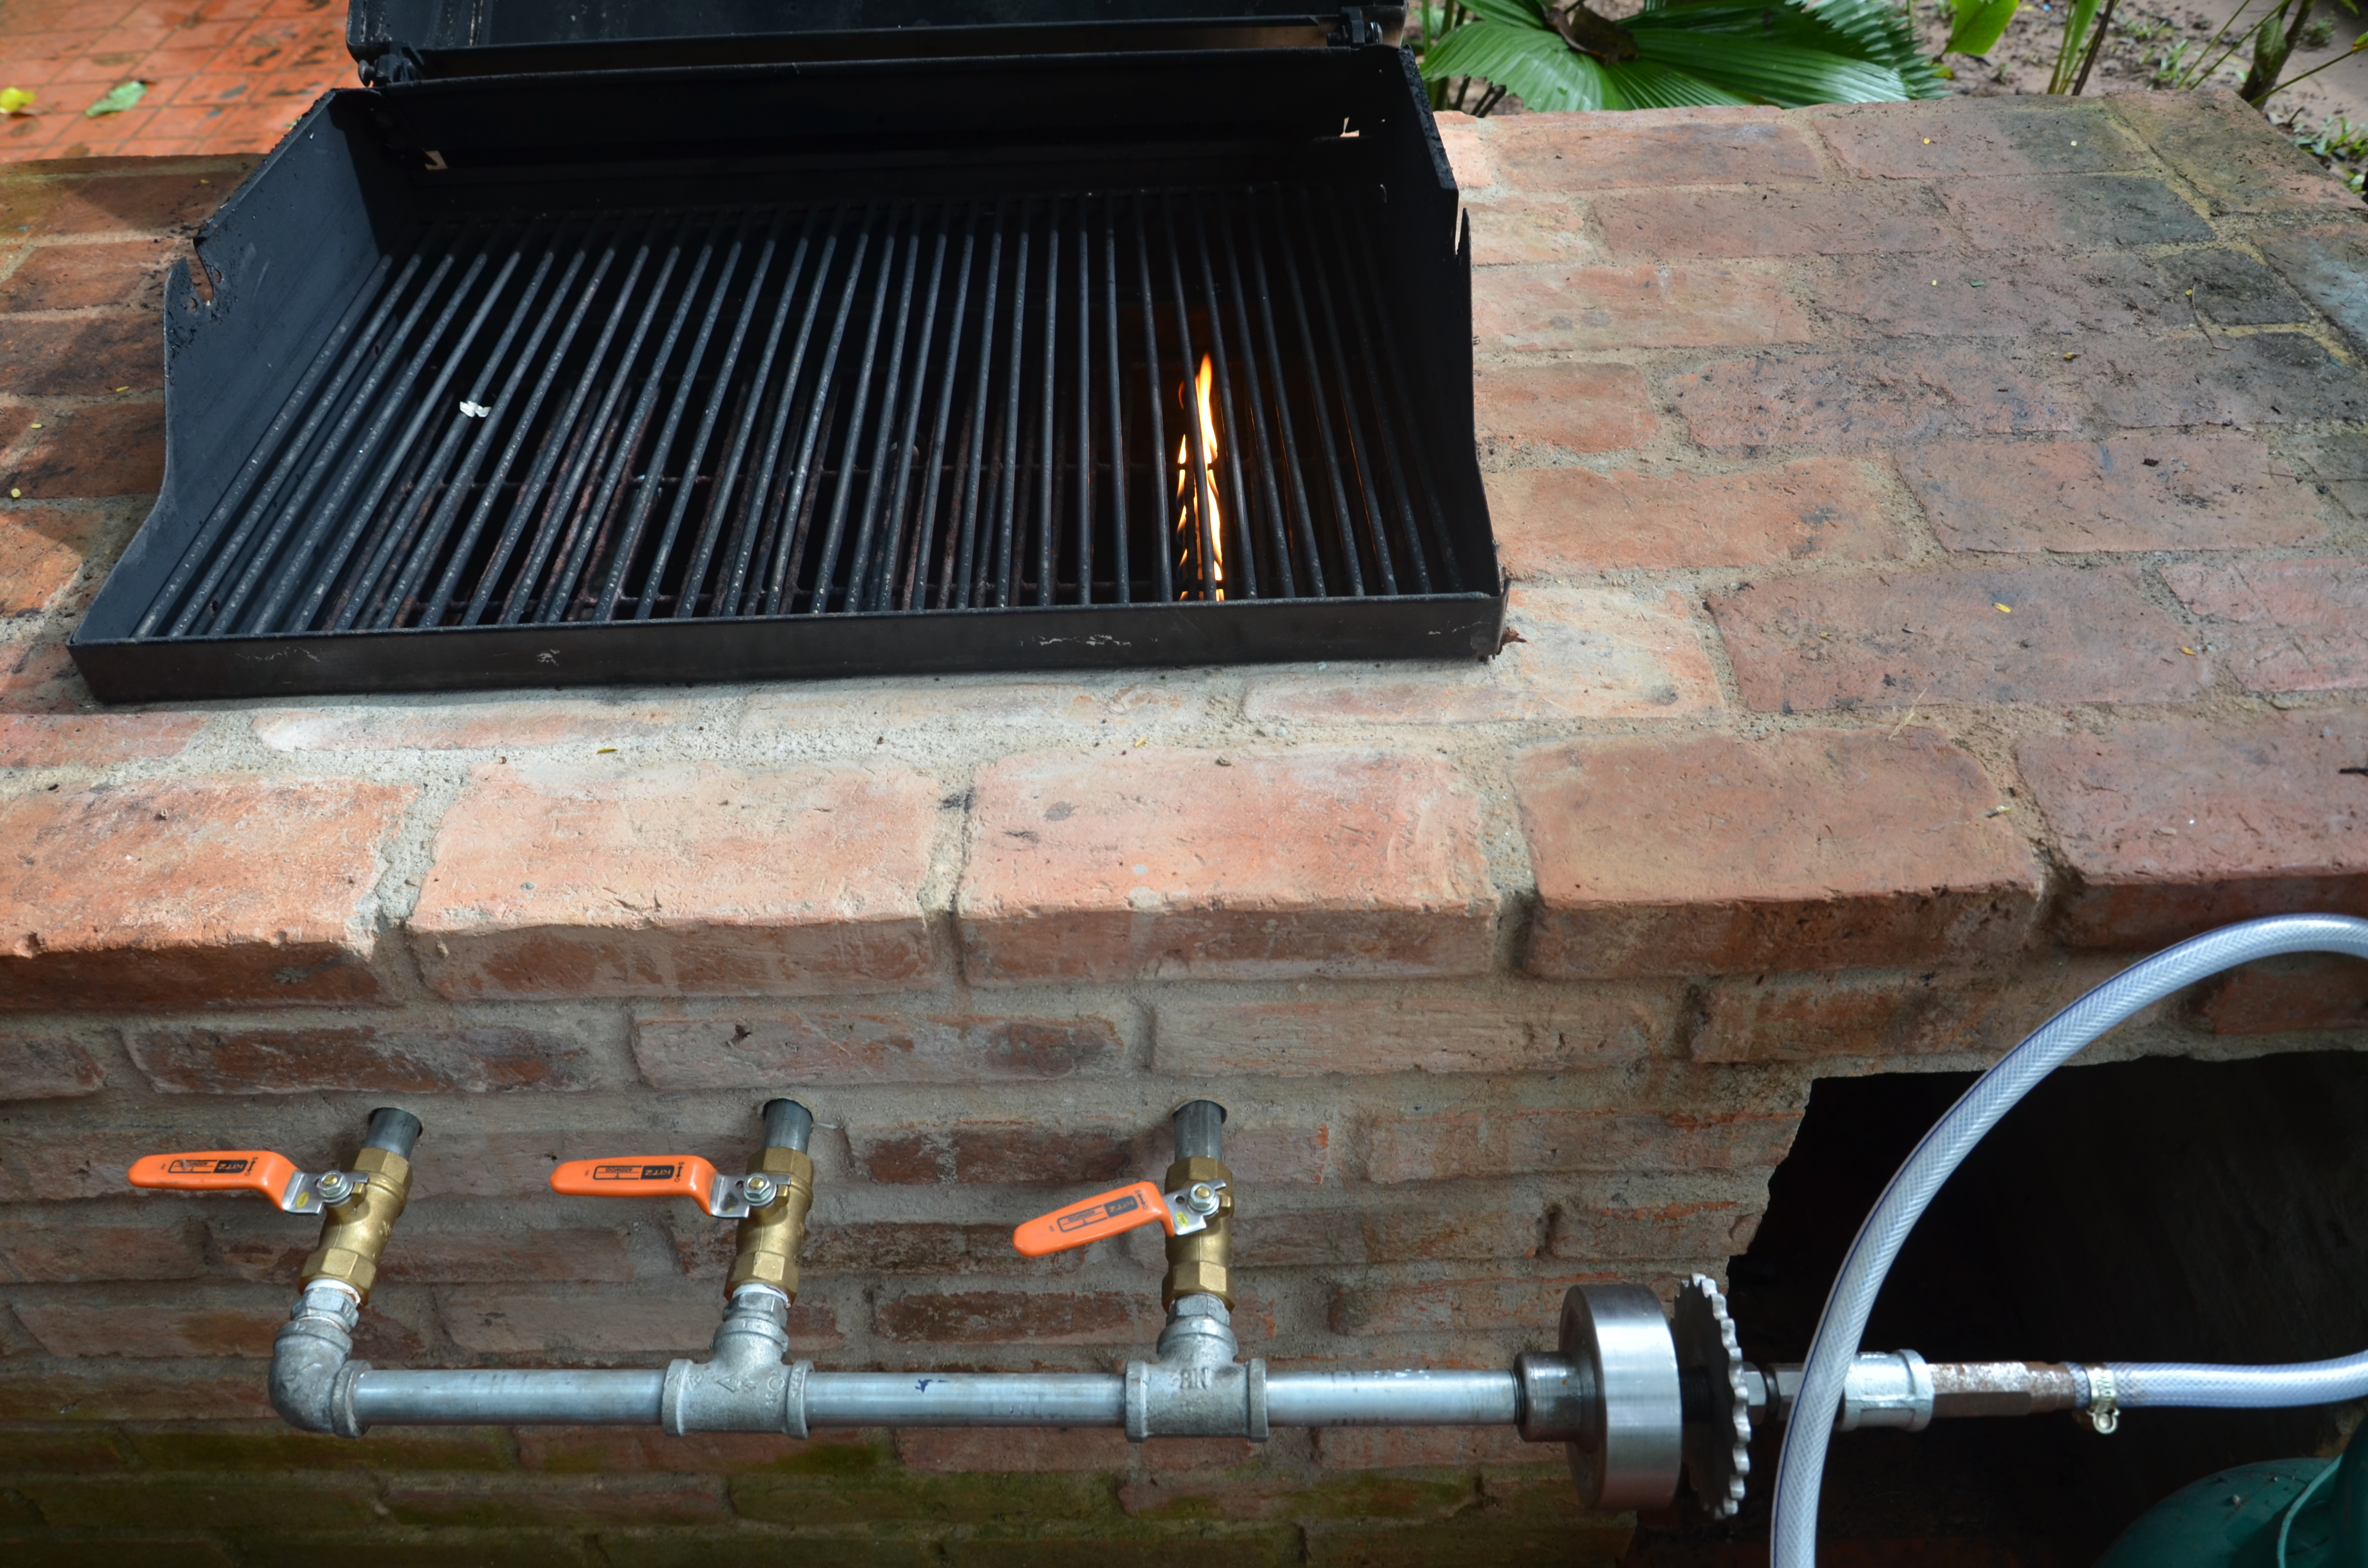 Trying To Build A Homemade Bbq Grill And Almost There But These Orange Flames Are Driving Me Crazy My Idea Is At Standstill The Local Experts